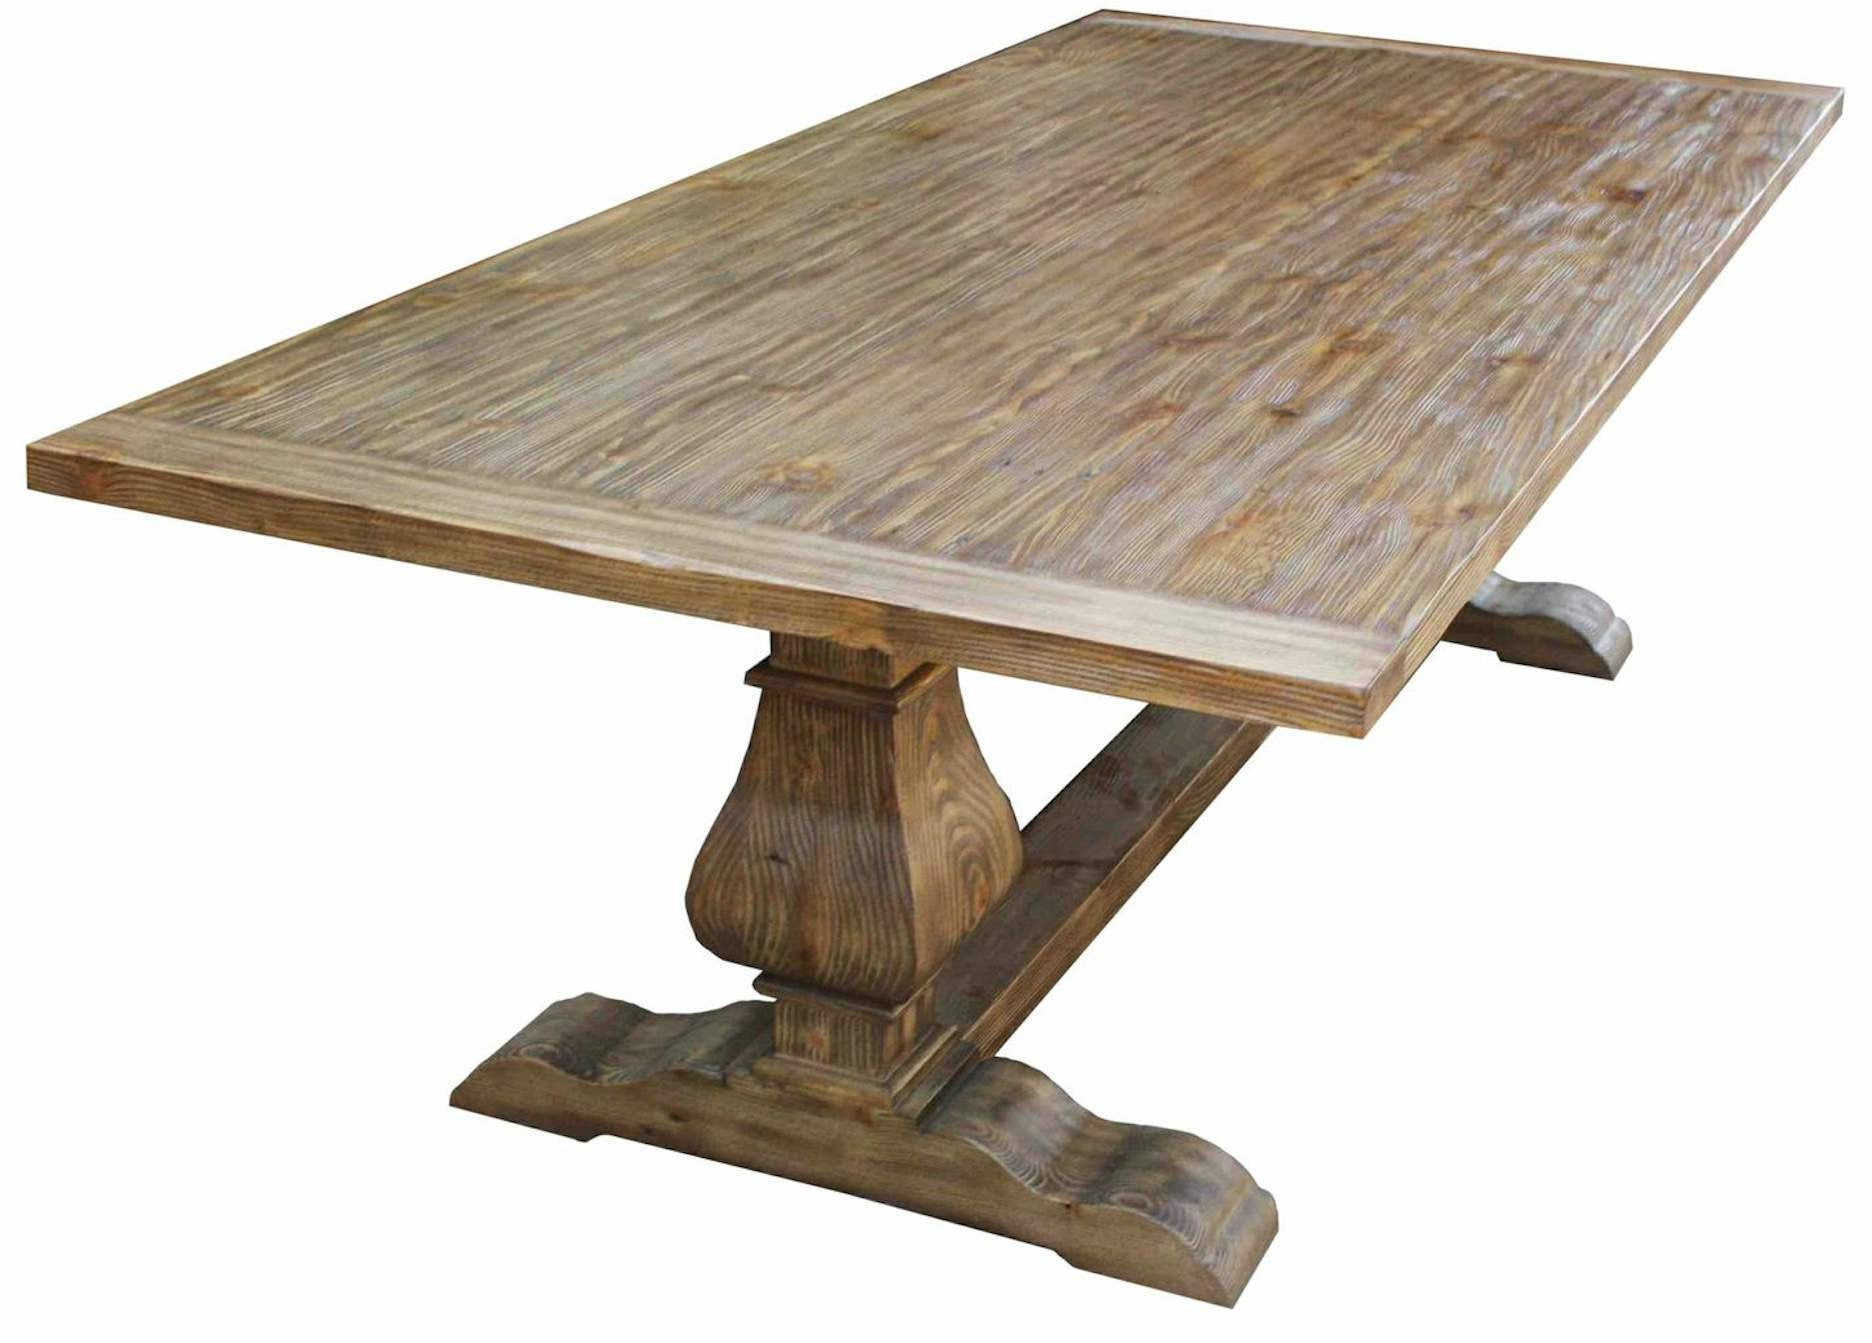 Custom Dining Tables Handmade from Traditional Trestle Tables